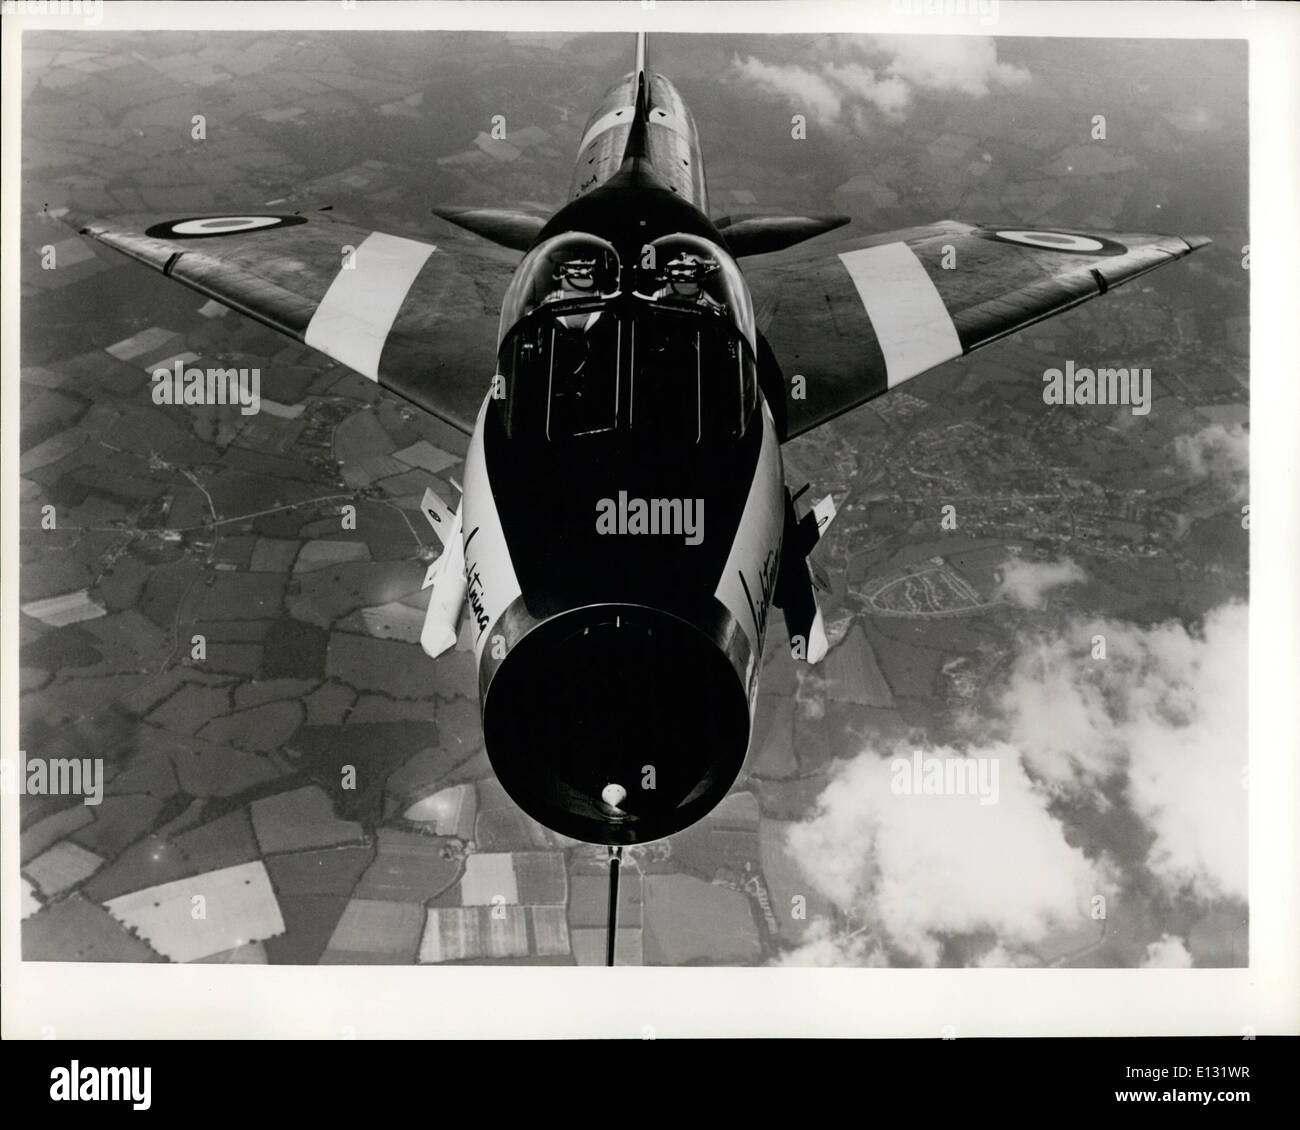 Feb. 26, 2012 - Supersonic Bug. Head-on air shot of the English Electric P.11 Lightning two-seater trainer over Hampshire, England, gives it the appearance of a bug. Said to have flown at approximately twice the speed of sound, the trainer version of Britain's fastest all-weather jet fighter is on order for the Royal Air Force. It will be delivered with provision for a full weapon system so that it can also be used as an operational aircraft. Part of the weapon system, two firestreak guided missiles are shown on either side of the fuselage. - Stock Image